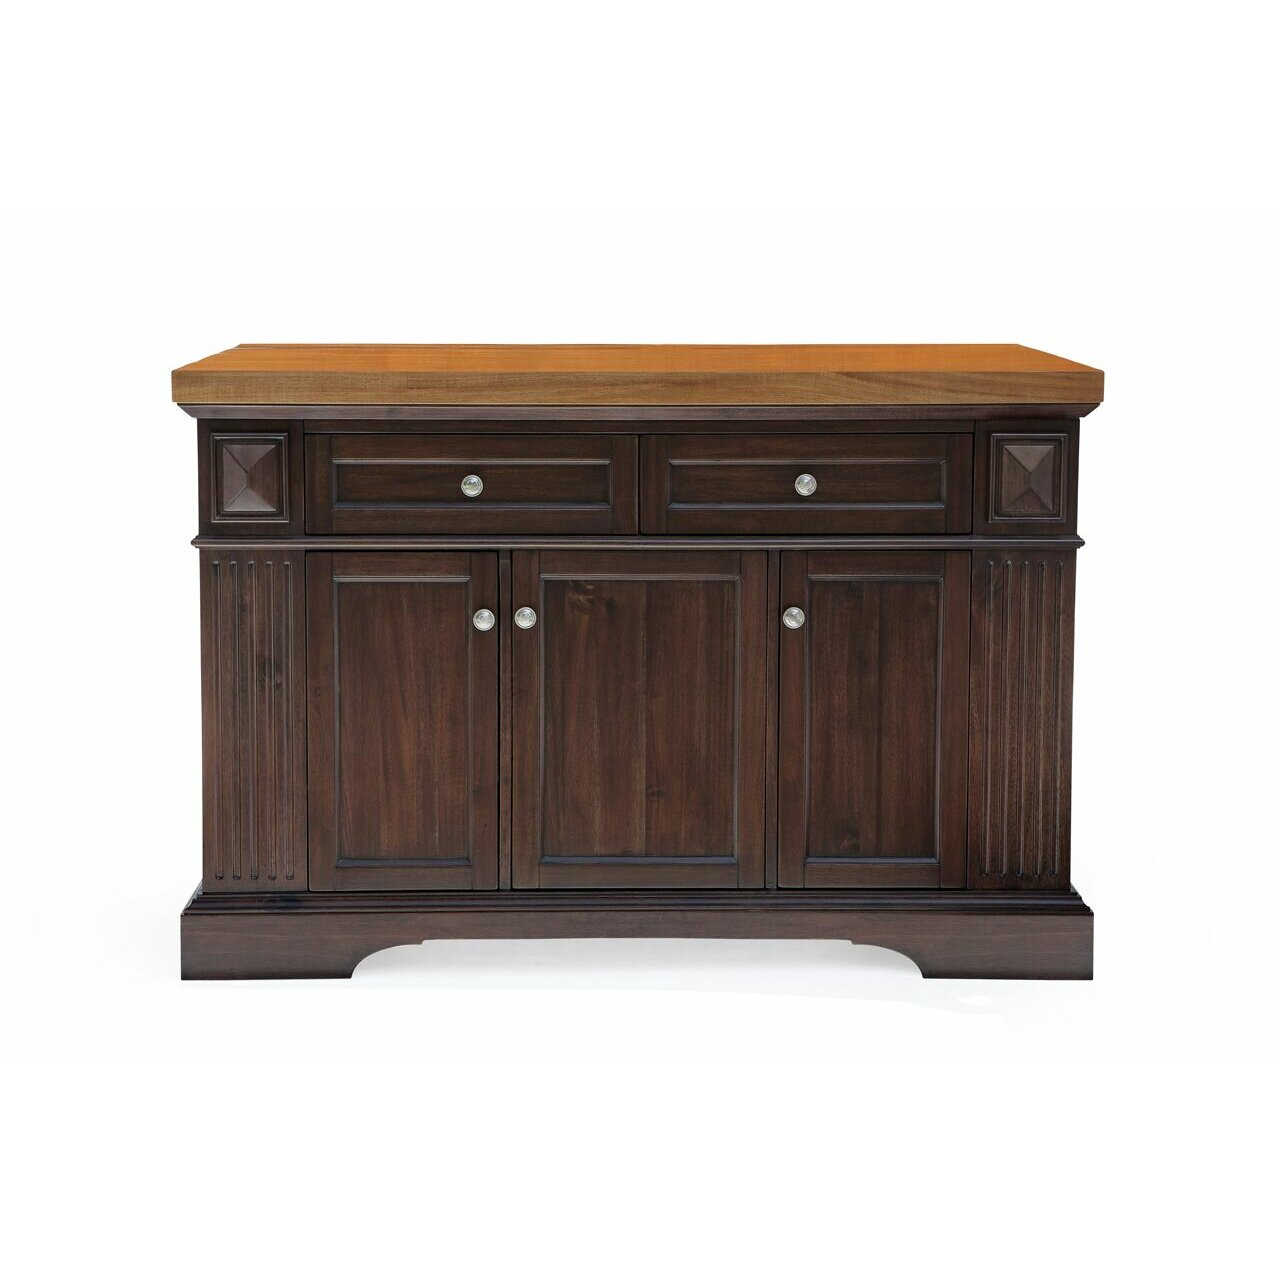 222 Fifth Furniture Greenwich Kitchen Island With Wood Top